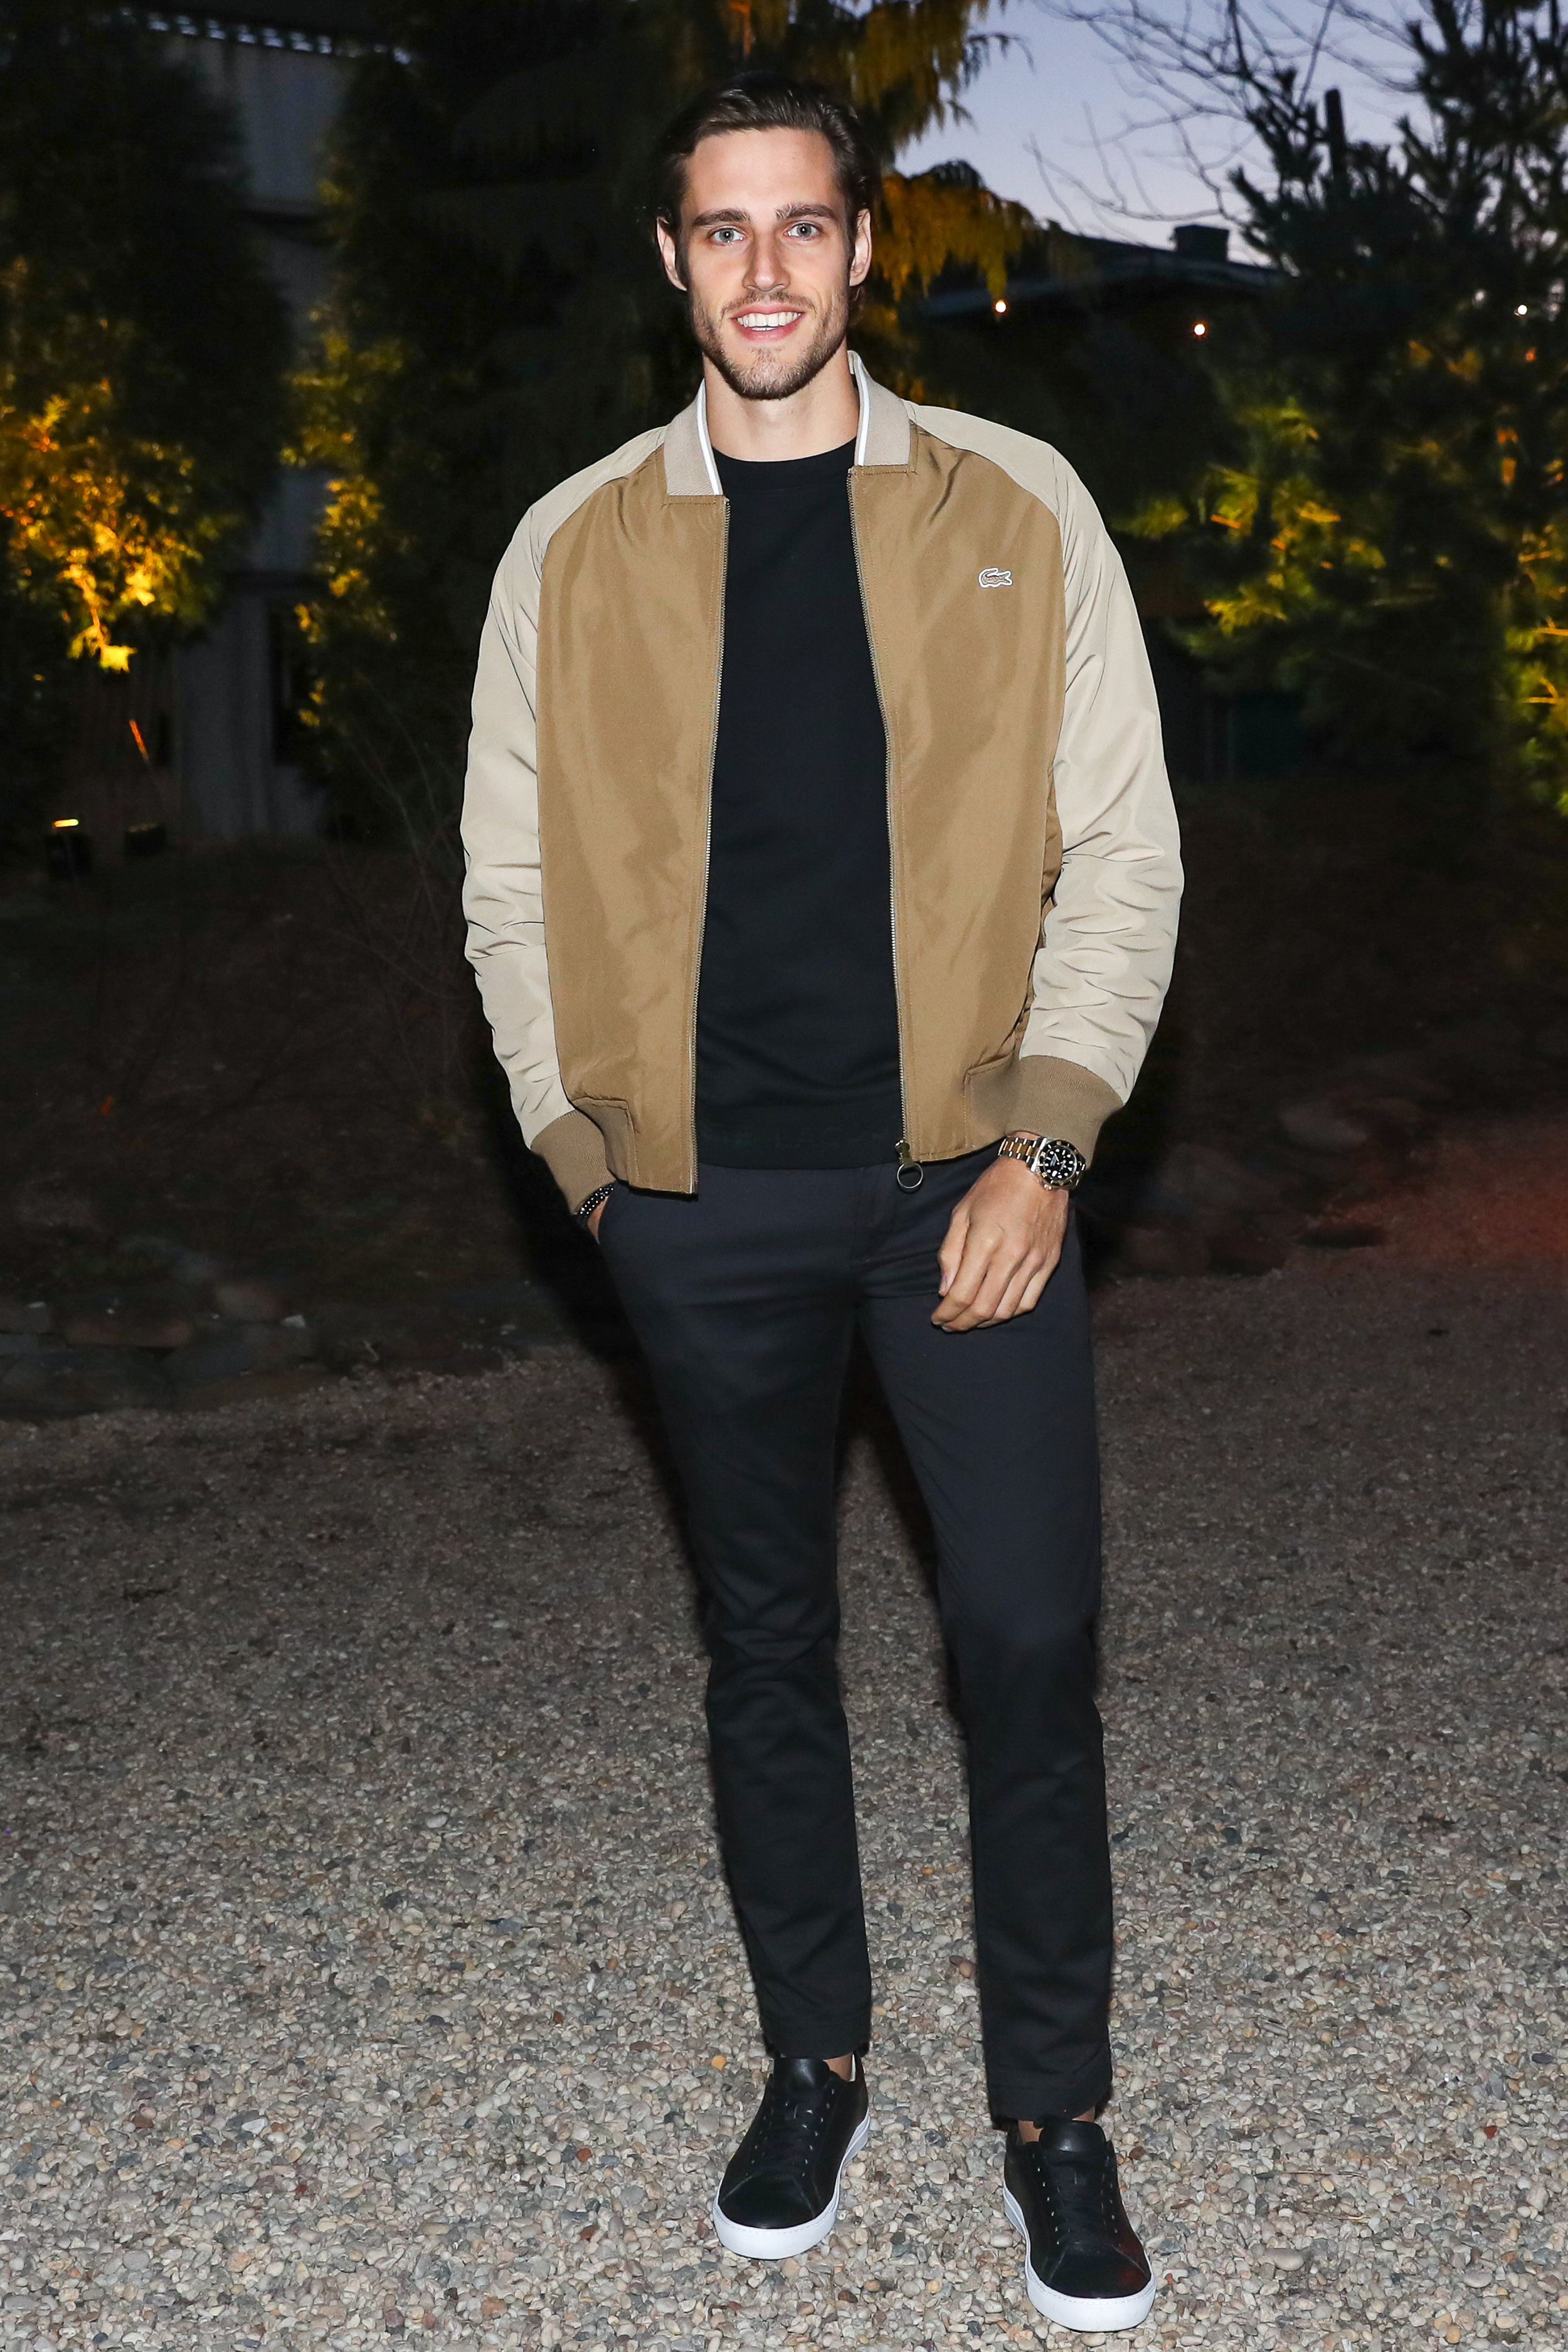 Jordan Stenmark attends The Lacoste x Keith Haring Global Launch Party at Pioneer Works on Tuesday, March 26th, 2019. Photographed by Neil Rasmus/BFA.